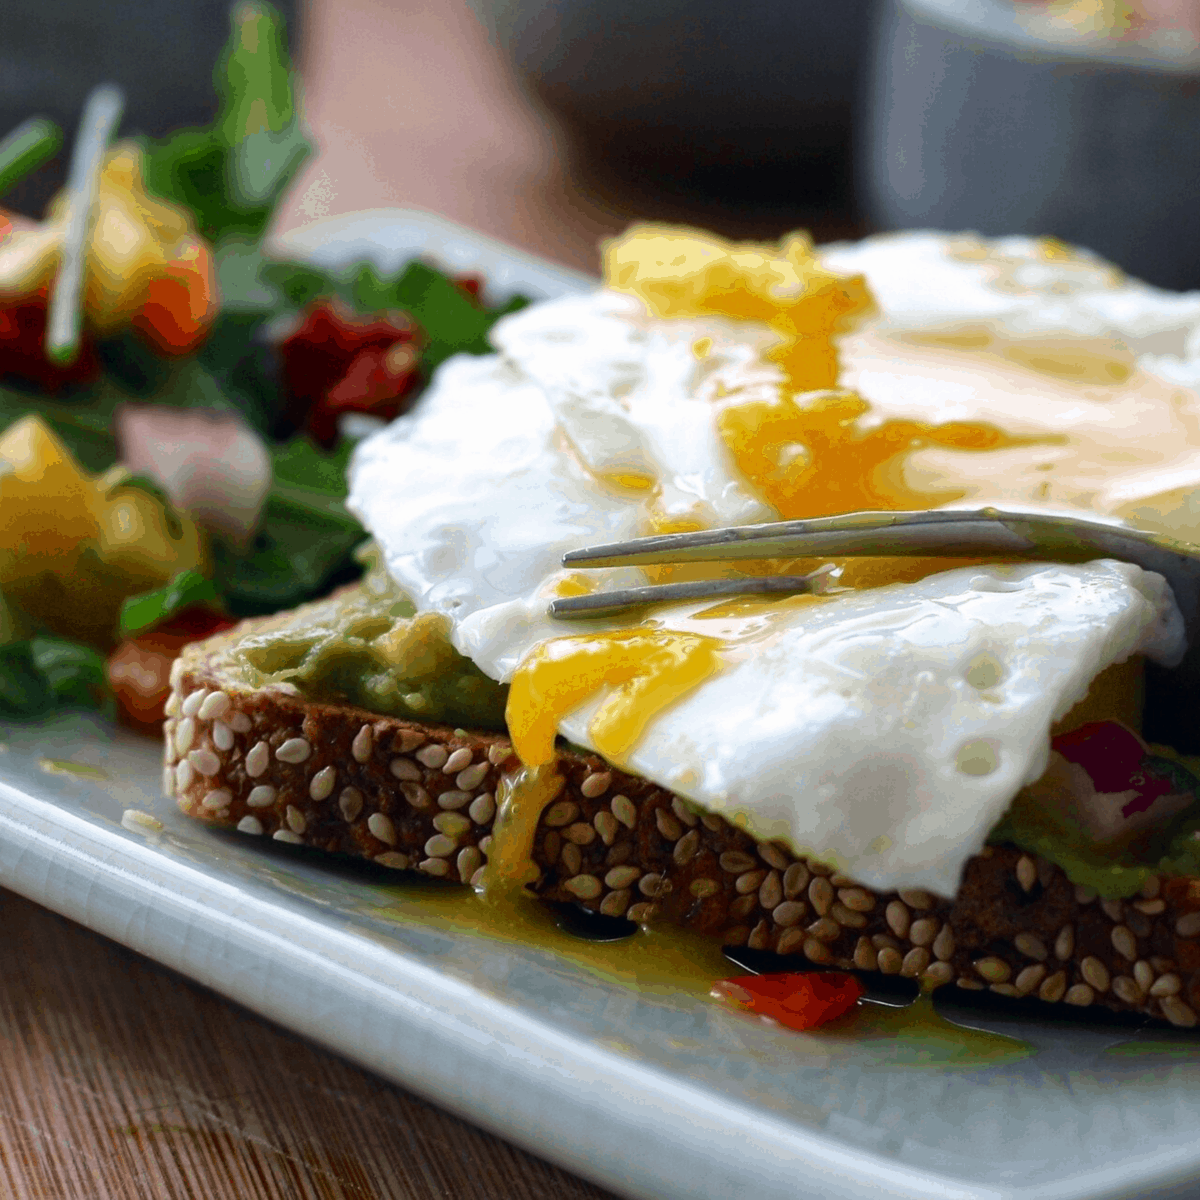 Eating egg on toast could lead to food sensitivity reactions